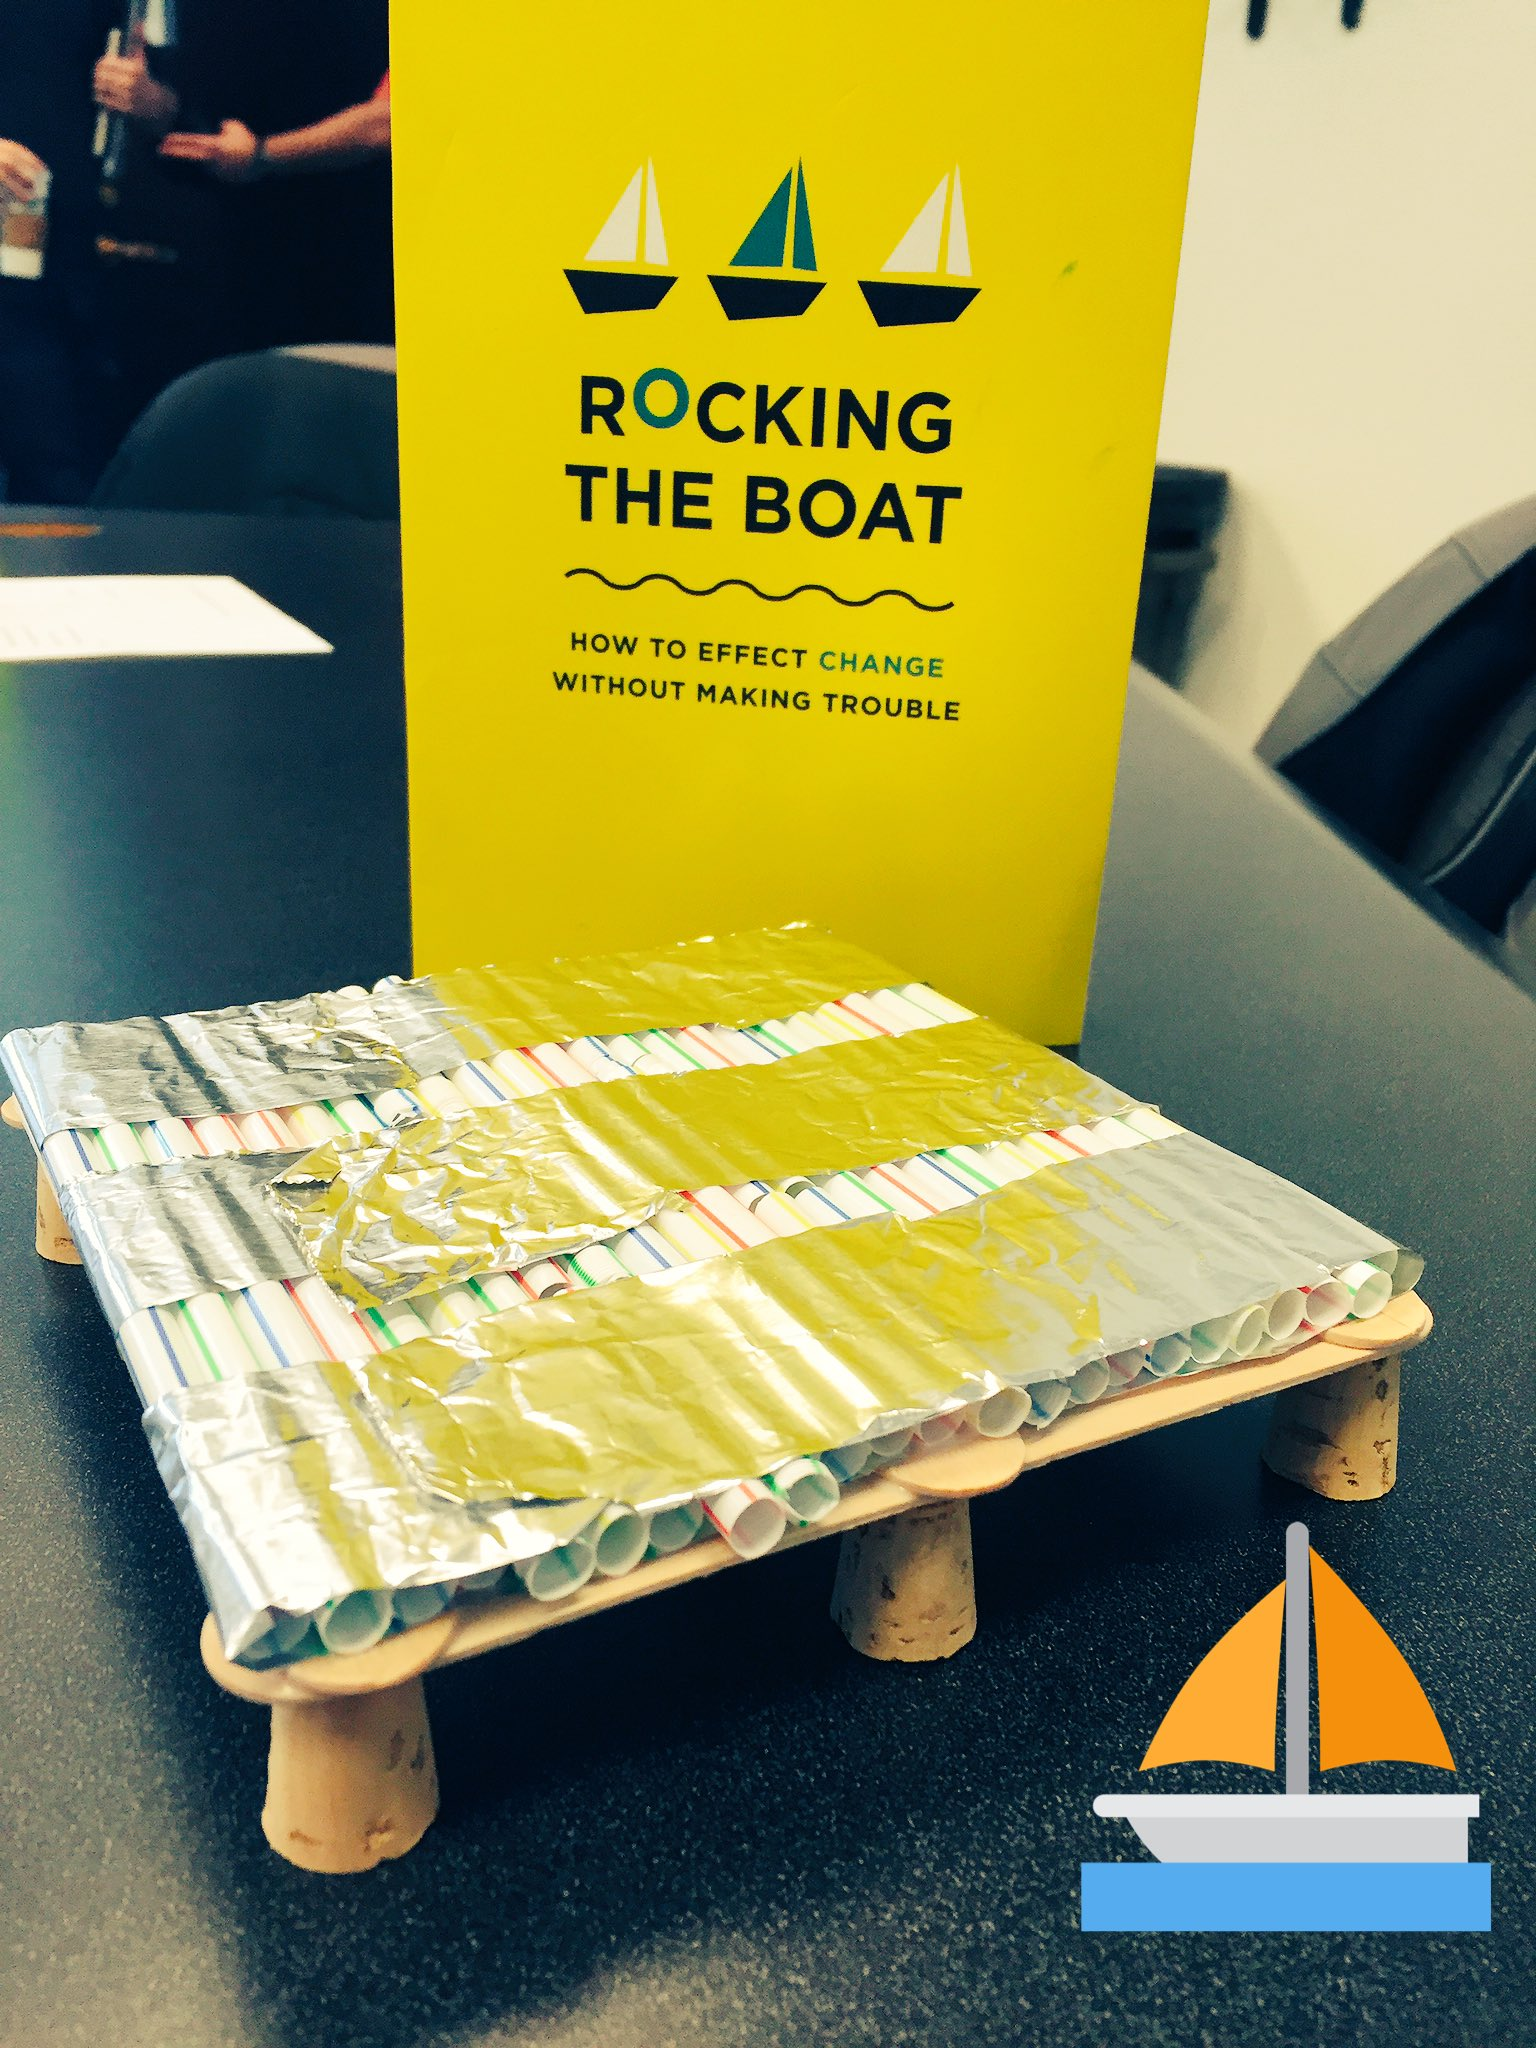 #quickfirechallenge 4 guys, a girl & a boat #MSUrbanSTEM @Calderbank160O @laddie63 @JohnsonEarl @darrenrfuller https://t.co/ycemzir59x